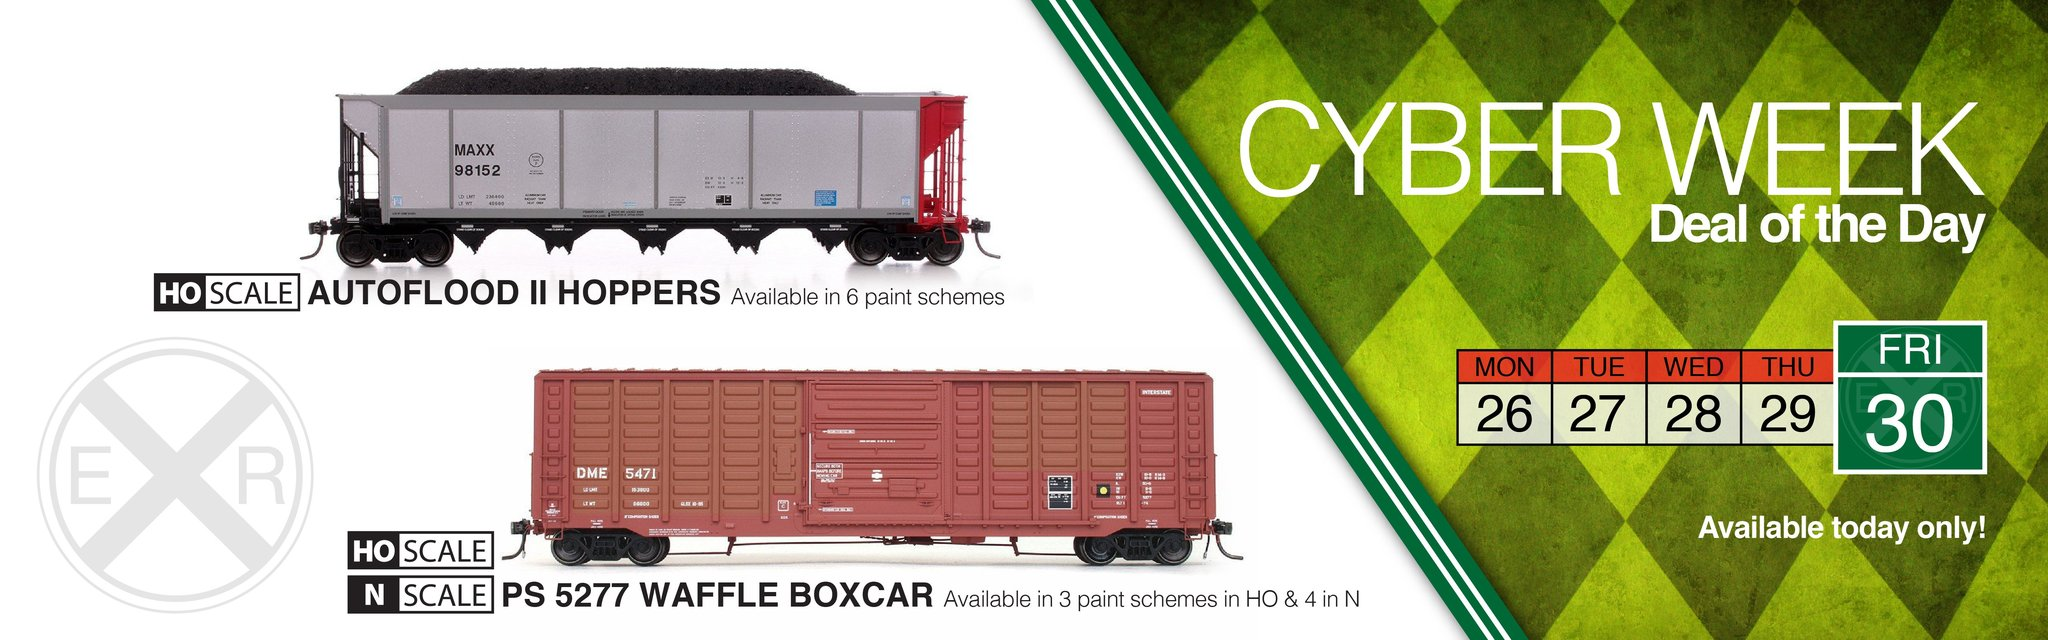 exactrail.com p-s 5277 waffle boxcar announcement page